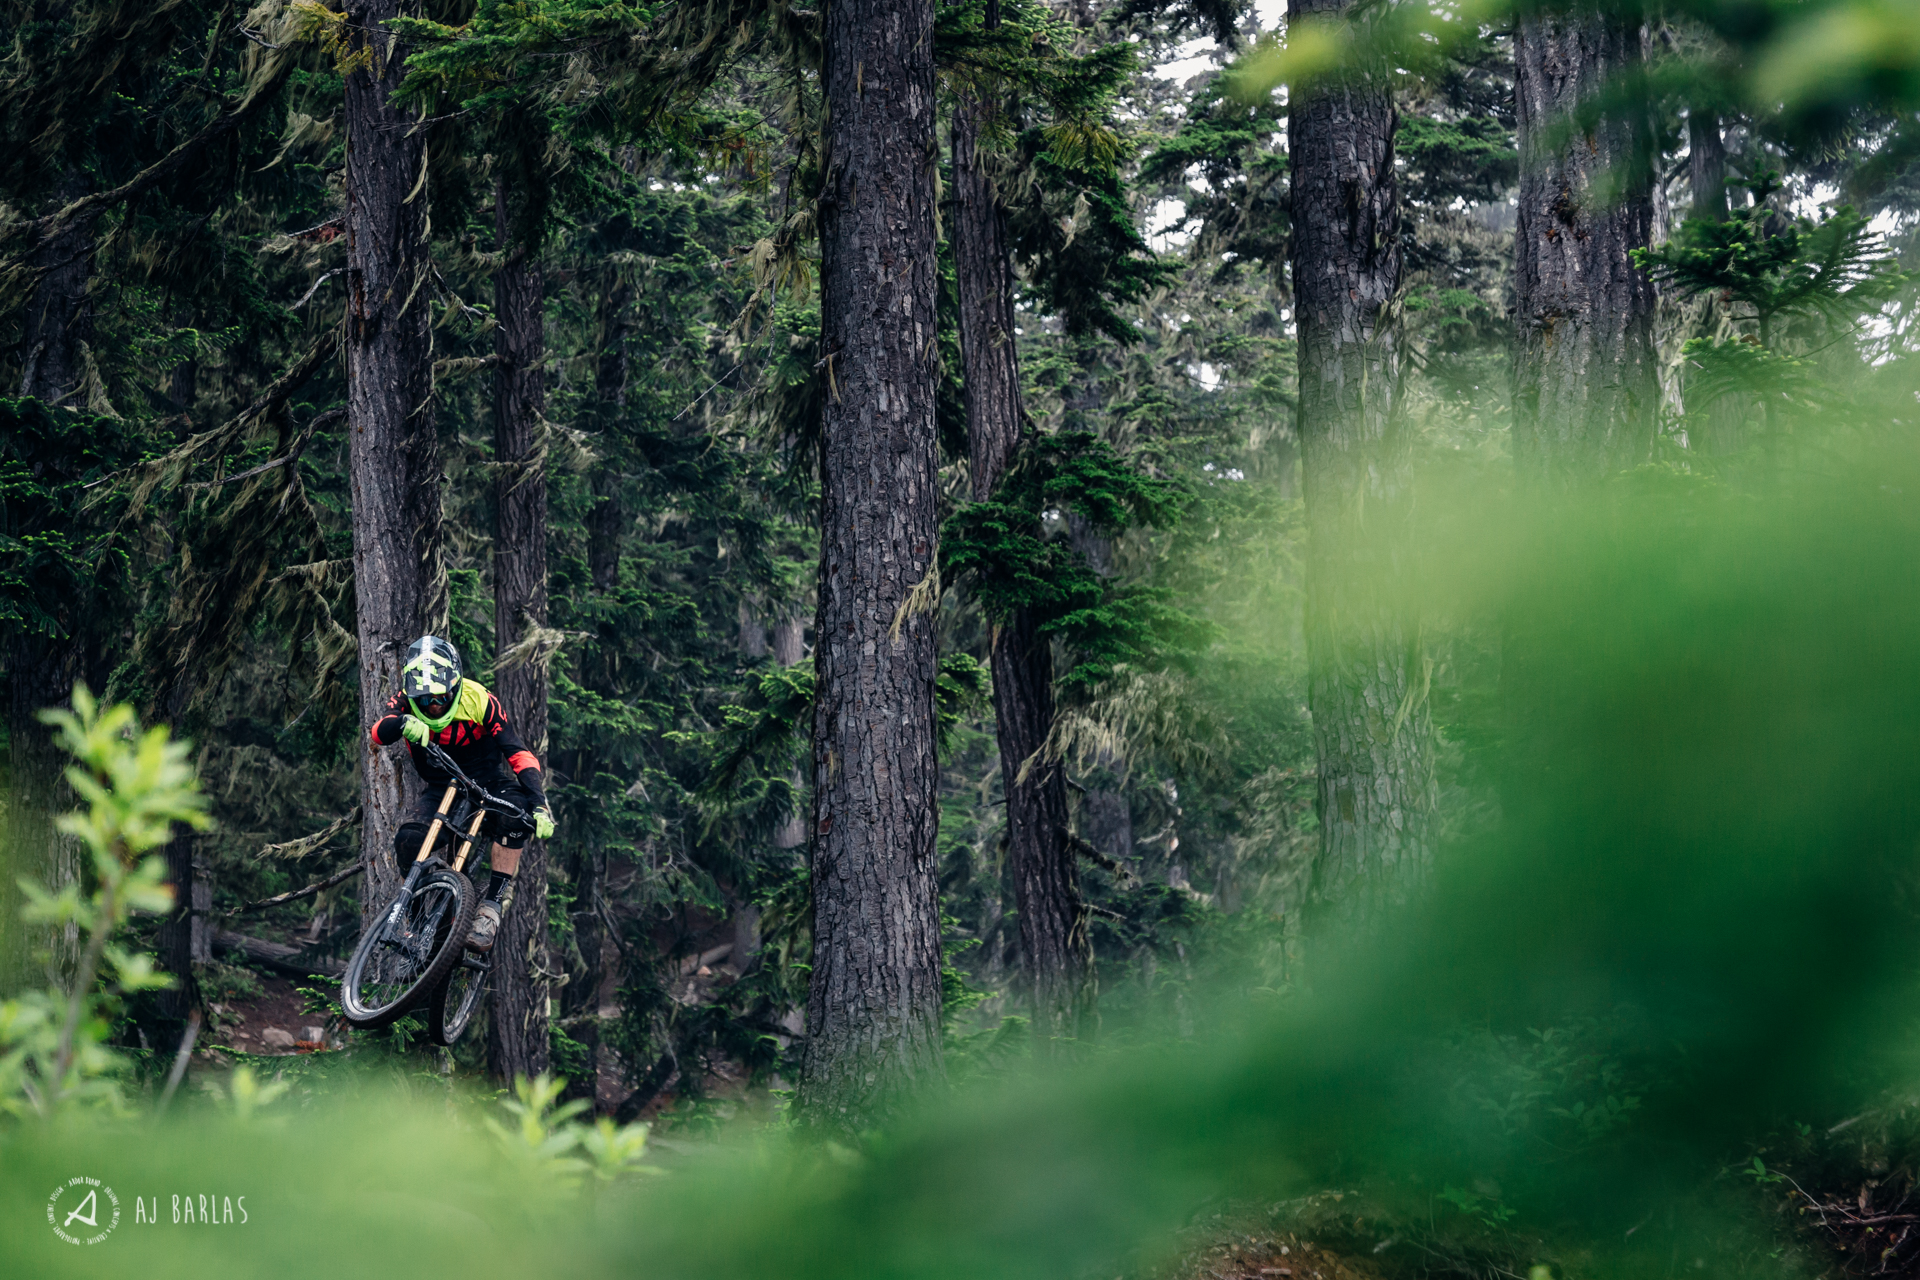 Jessie Mcauley flying through the old growth of the Whistler Bike Park